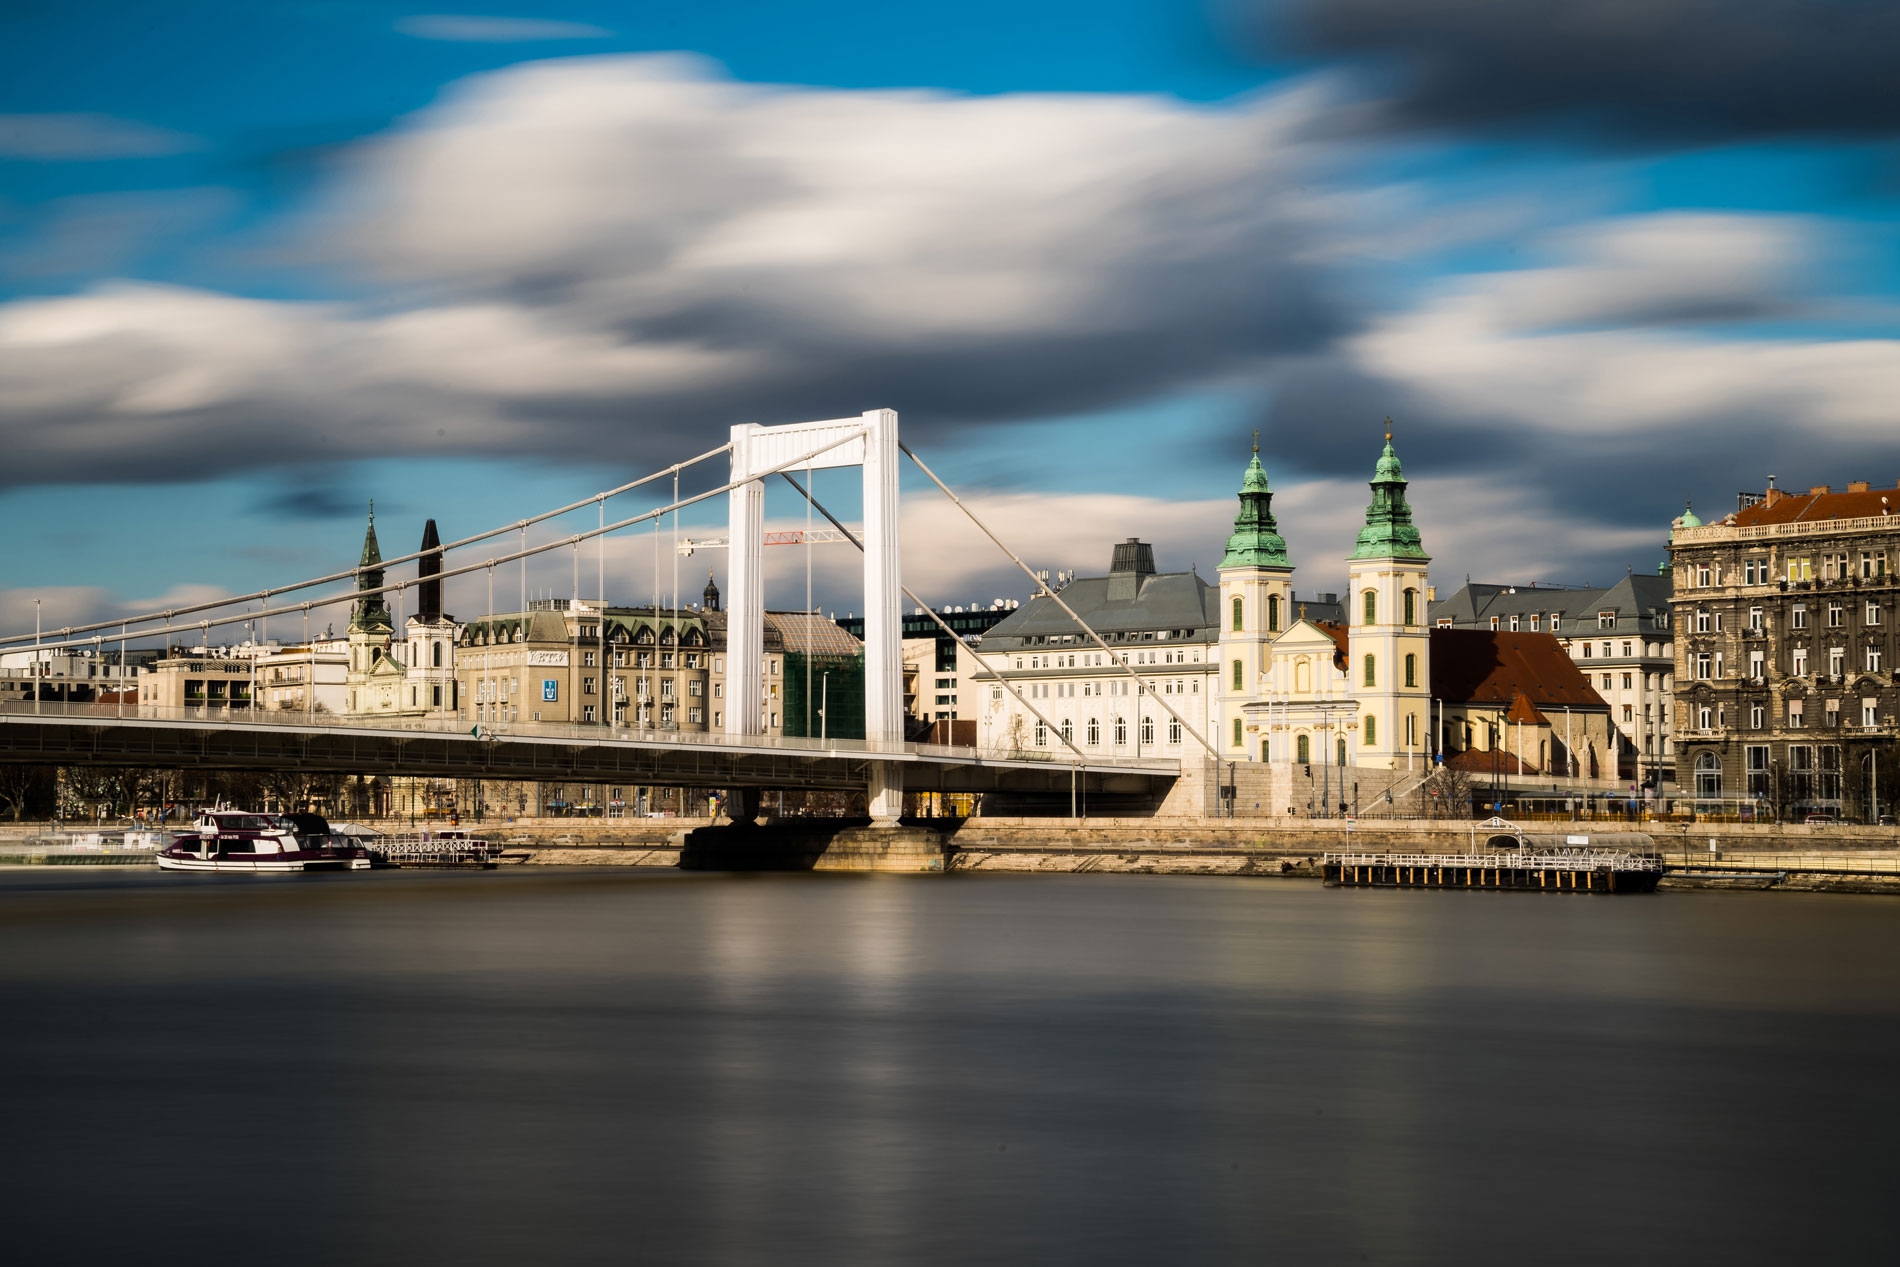 budapest_atthary_photography_danube_38